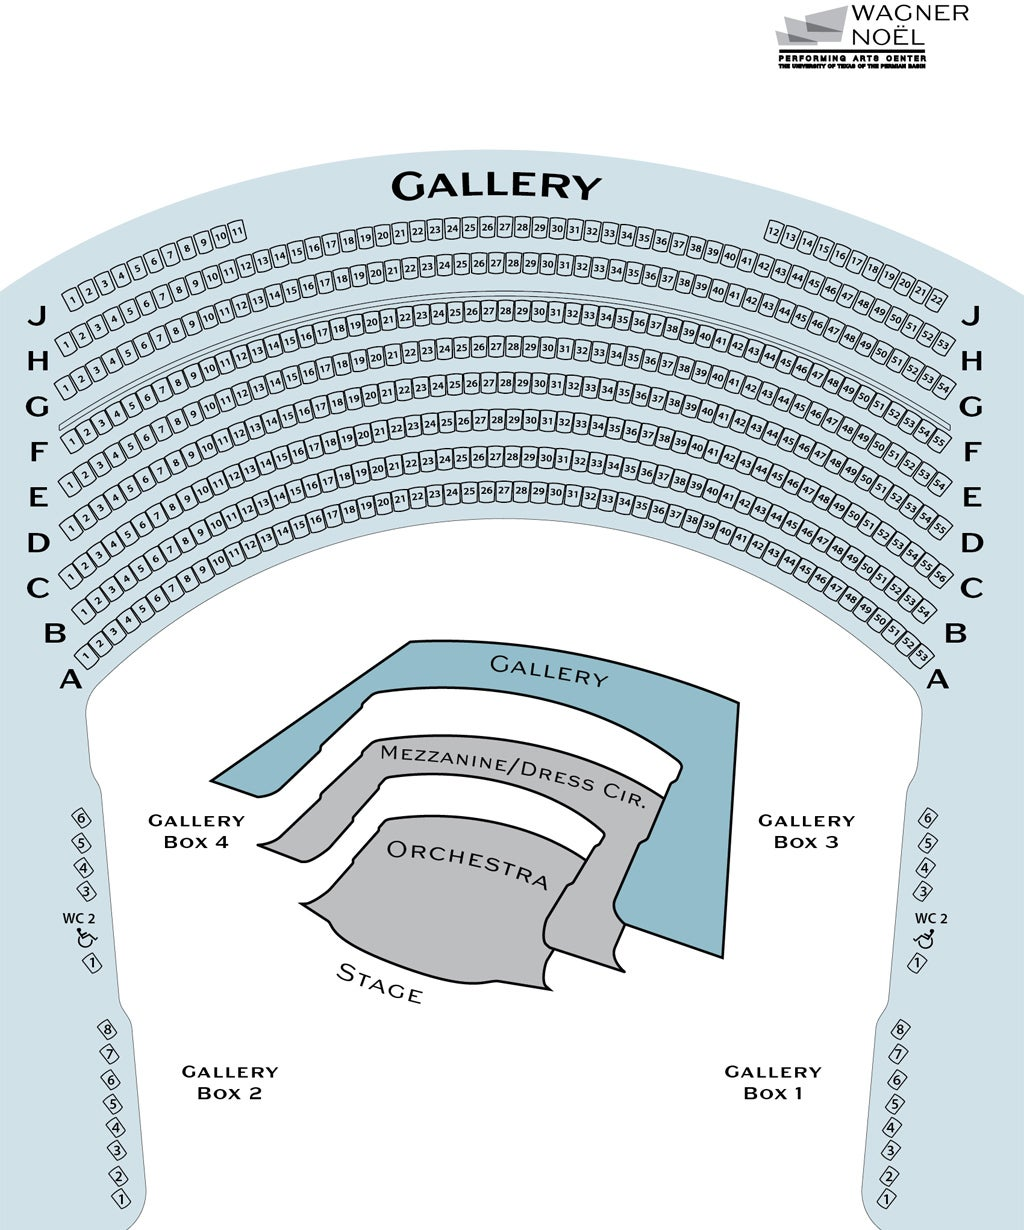 GALLERY SEATING